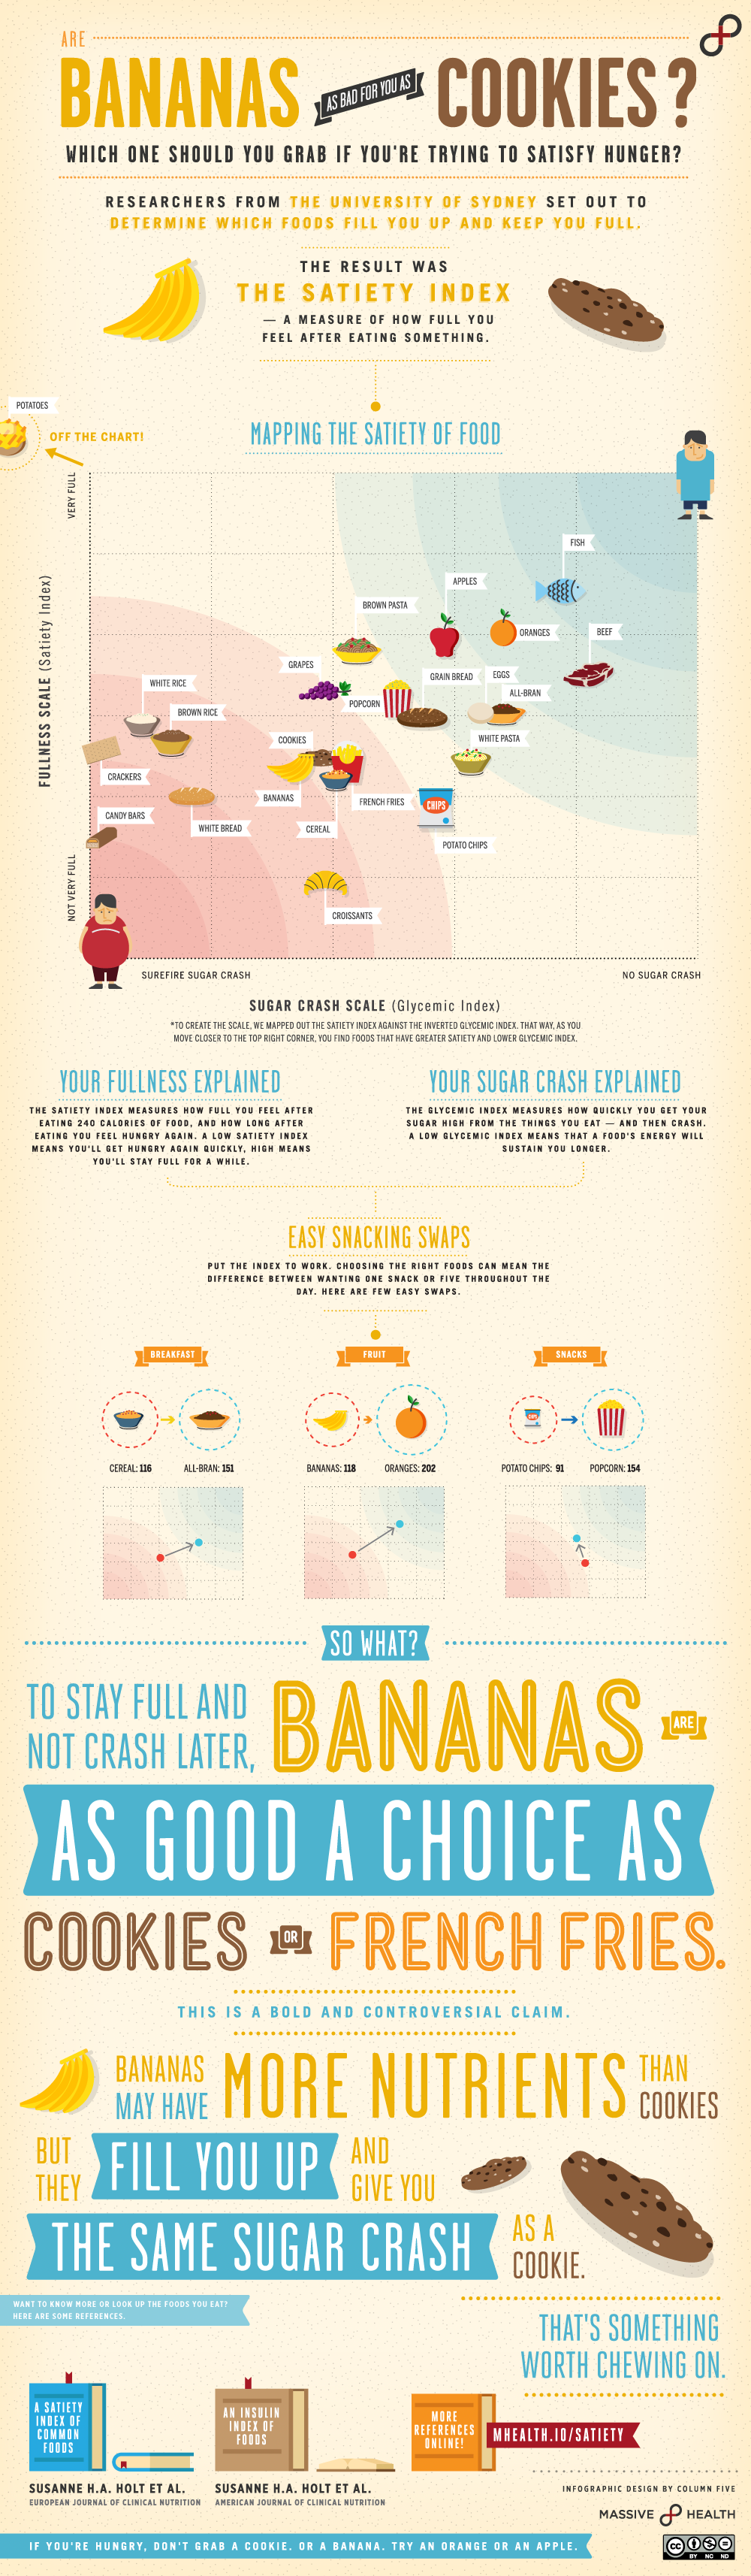 Massive Health - Are Bananas Really as Bad for you as Cookies? [infographic]